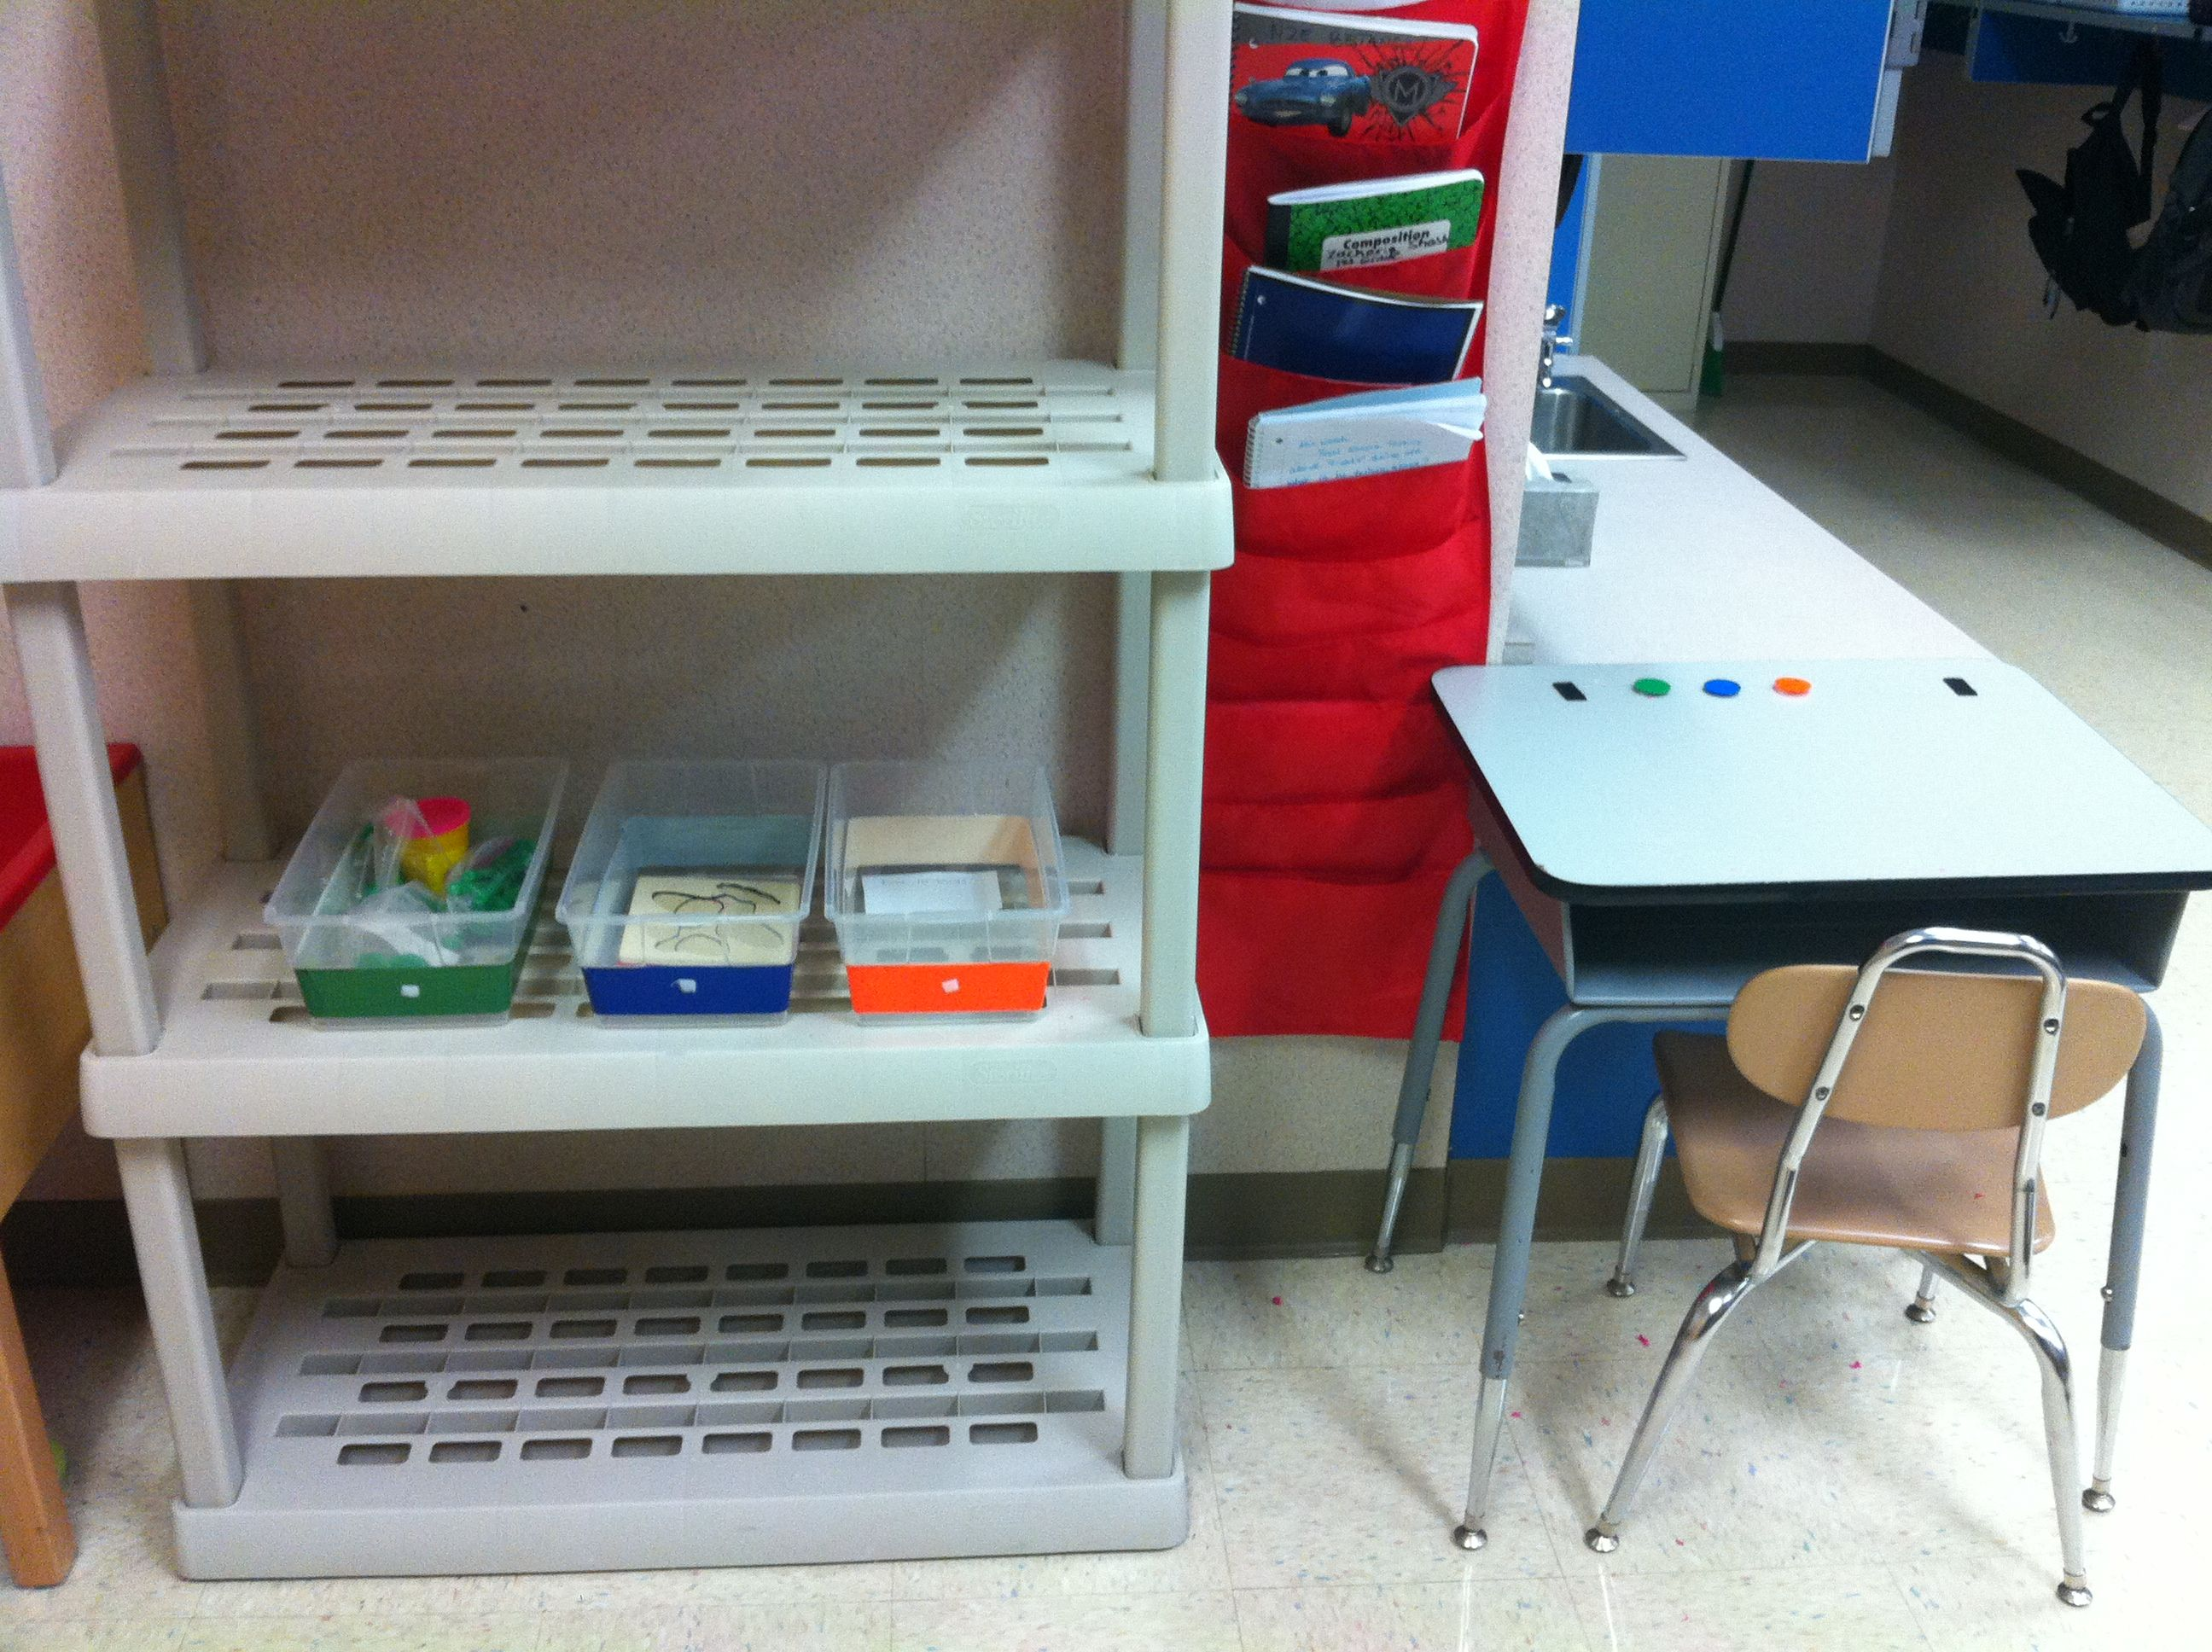 structured sensory area, work system on desk. Students work left to right, matching chips to colored bins. Sensory table to the left of shelves (TEACCH Philosophy)